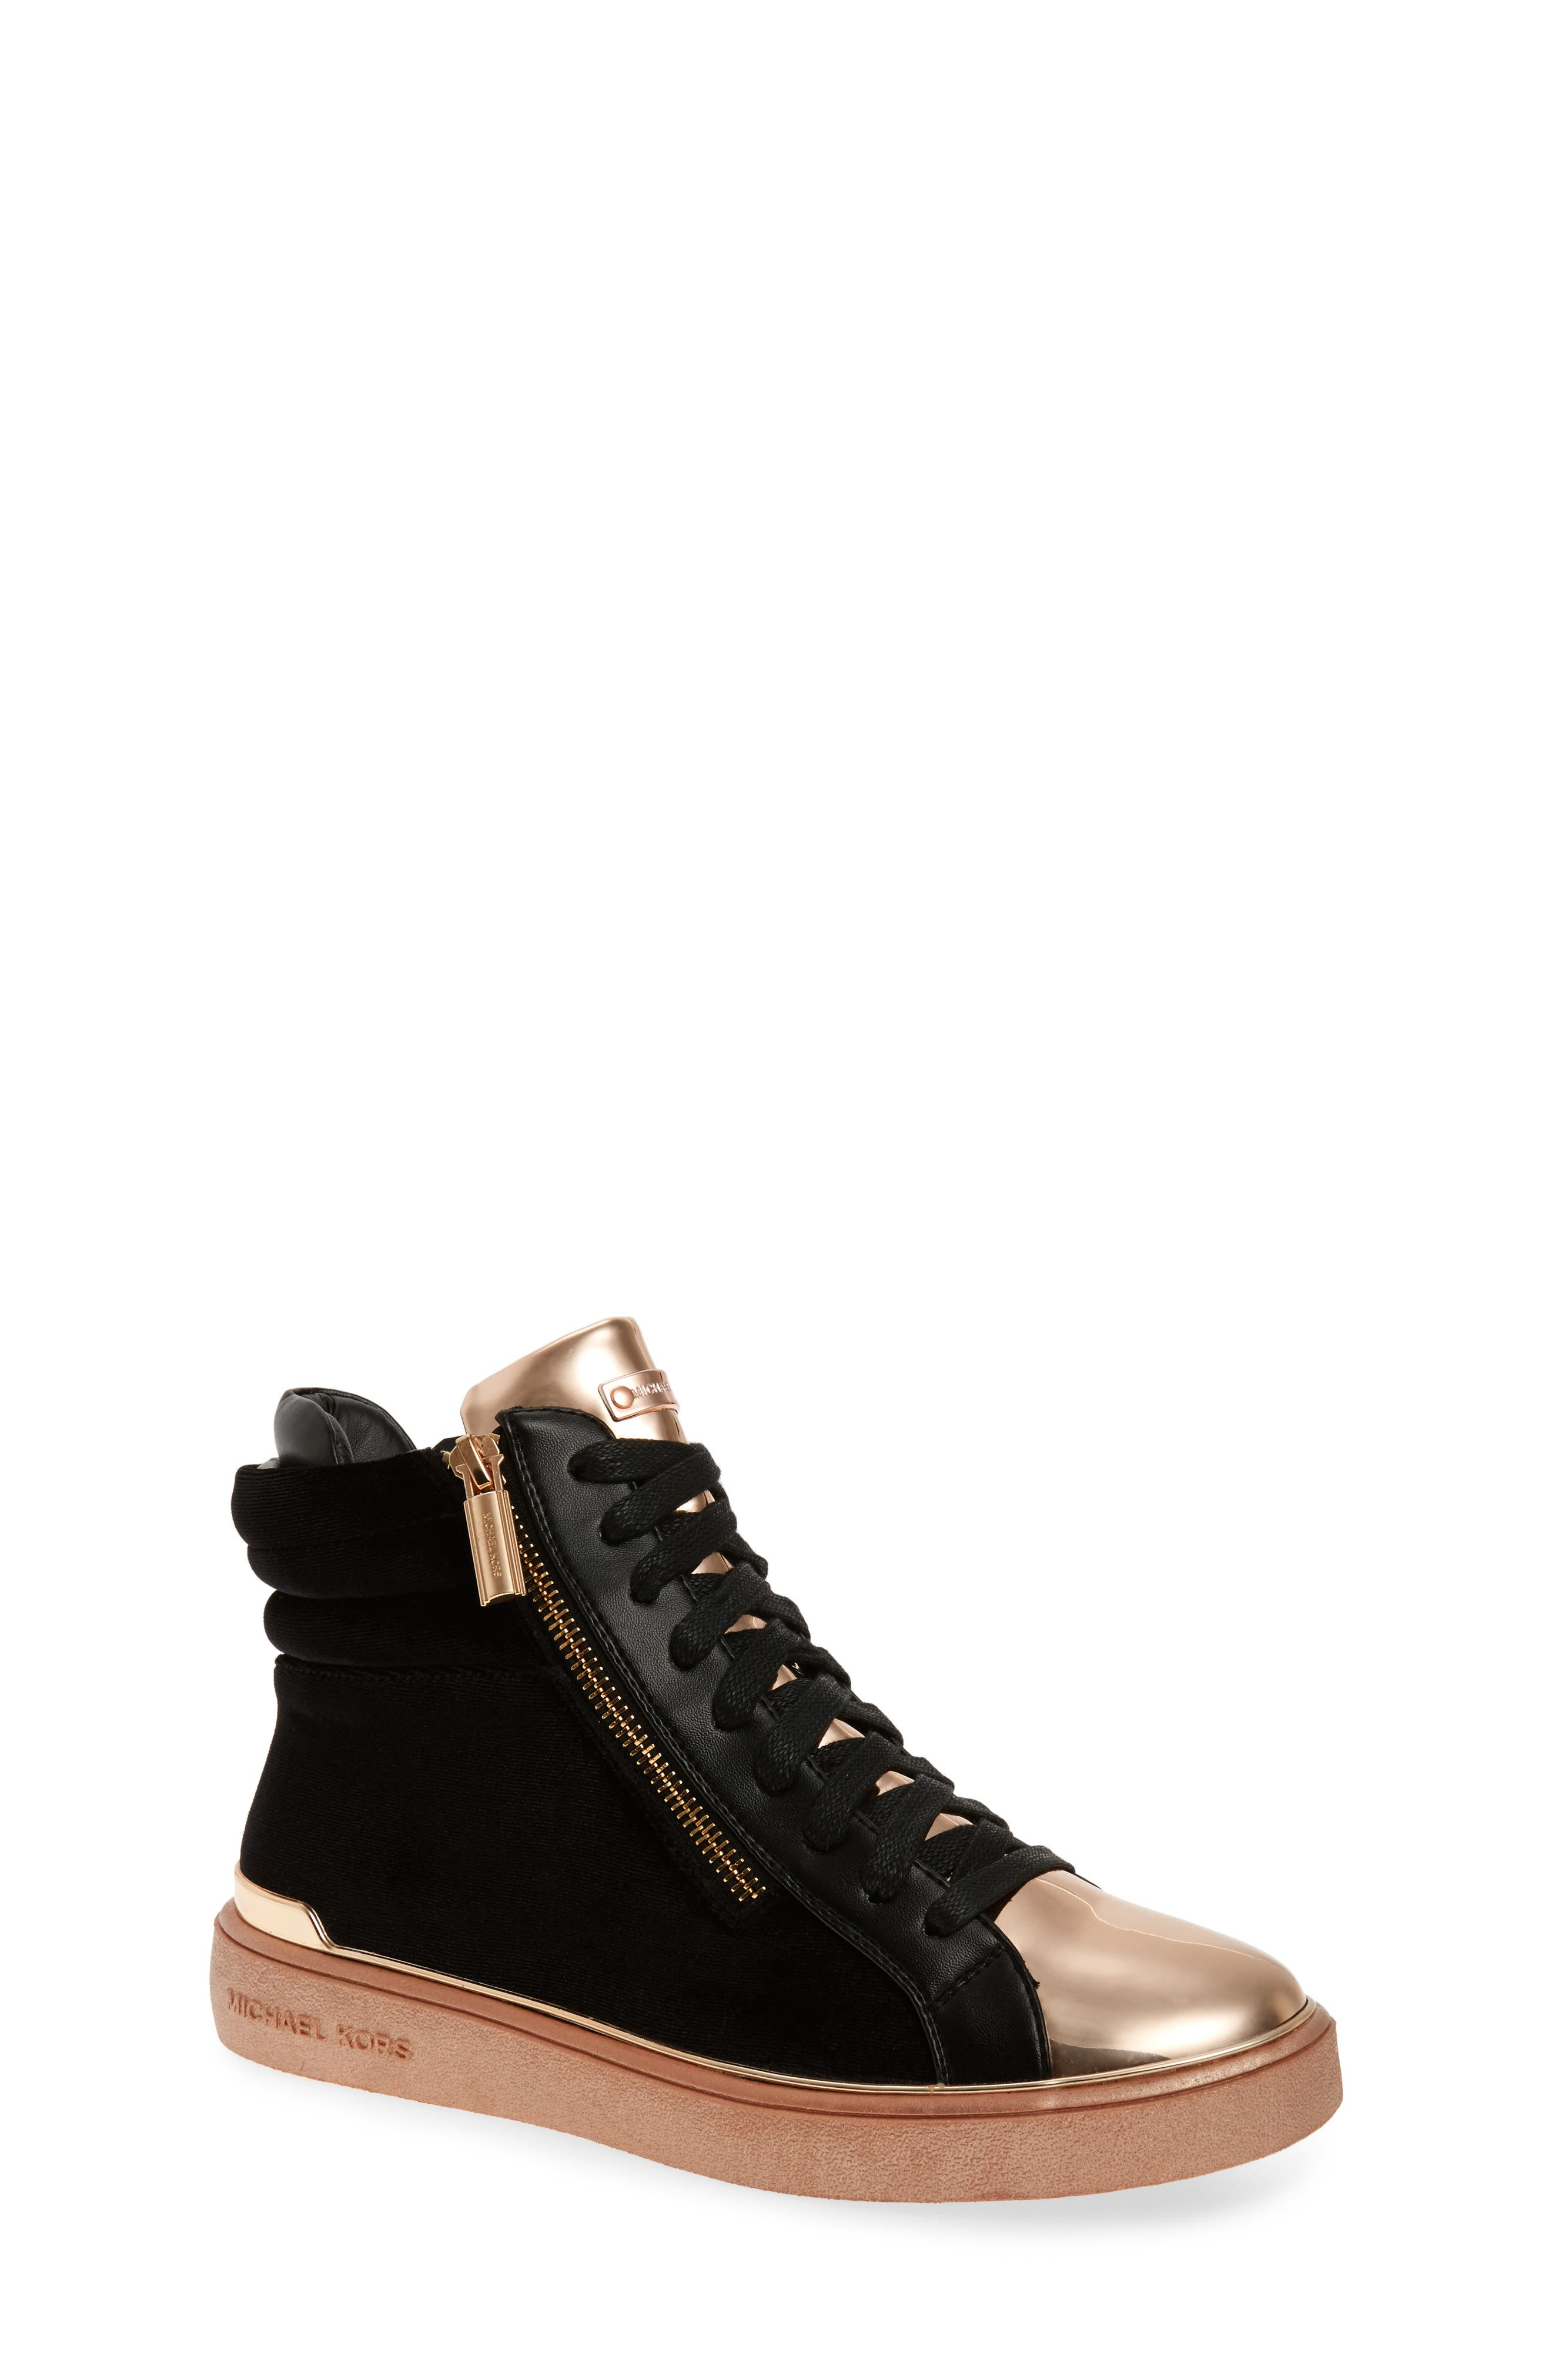 Ivy Blue High Top Sneaker,                             Main thumbnail 1, color,